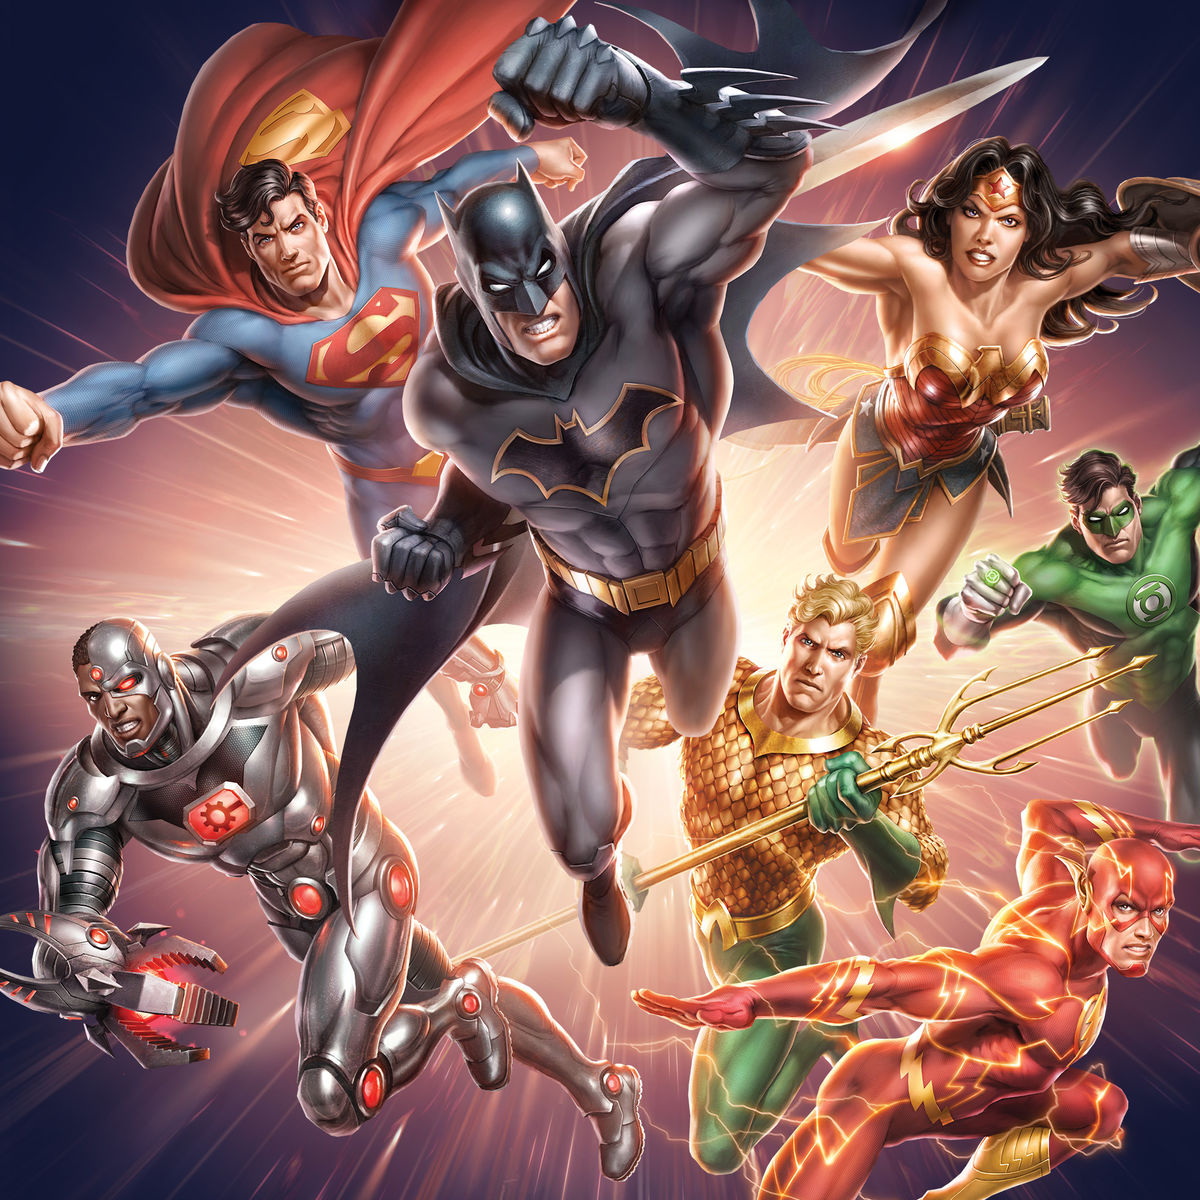 dc-universe-10th-anniversary-collection.jpg